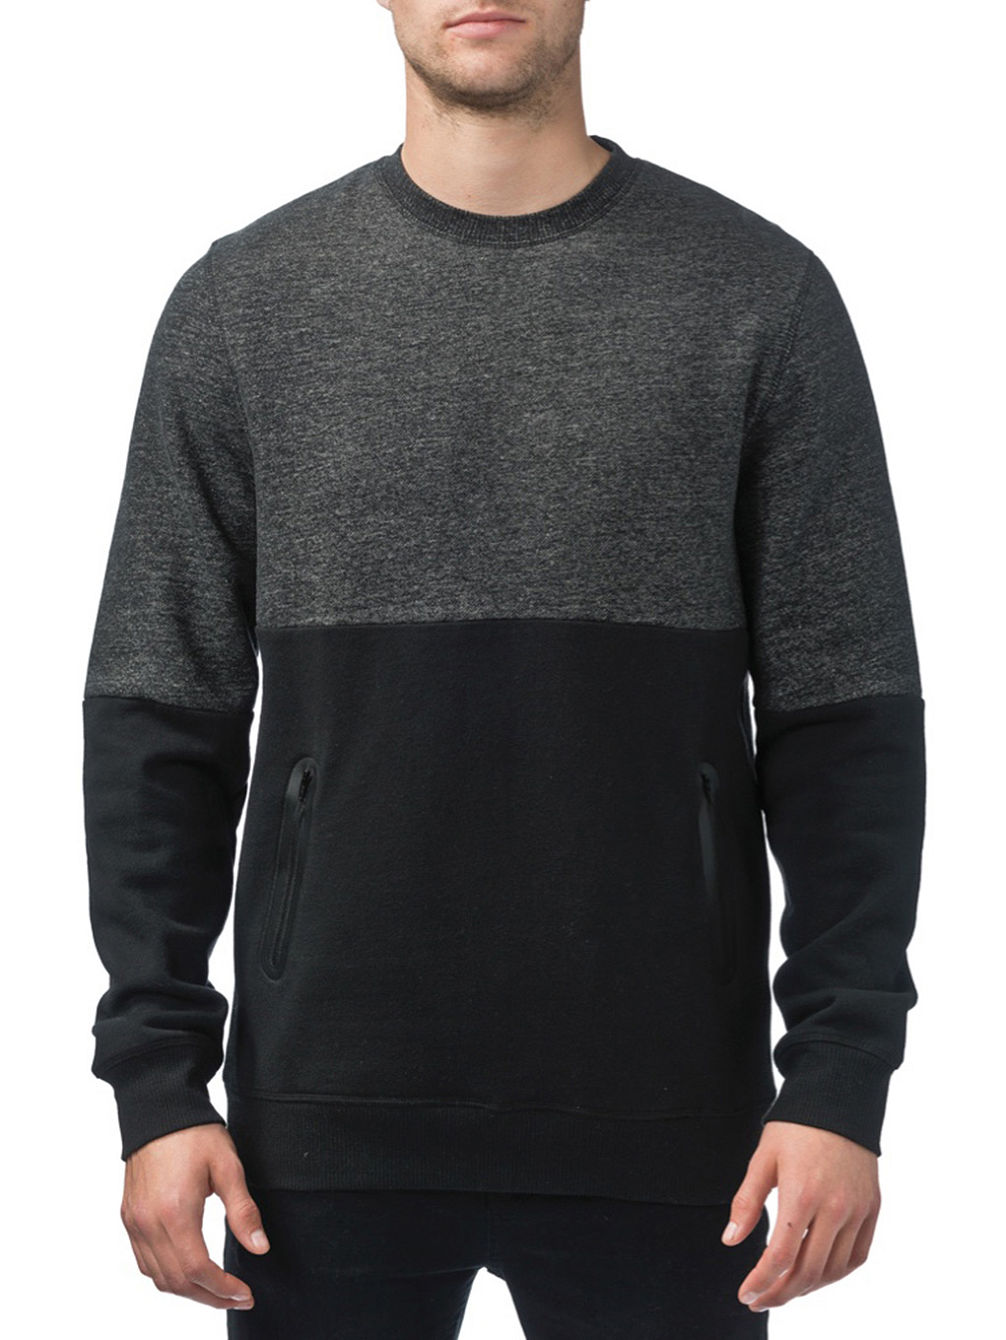 Dusted Crew Sweater